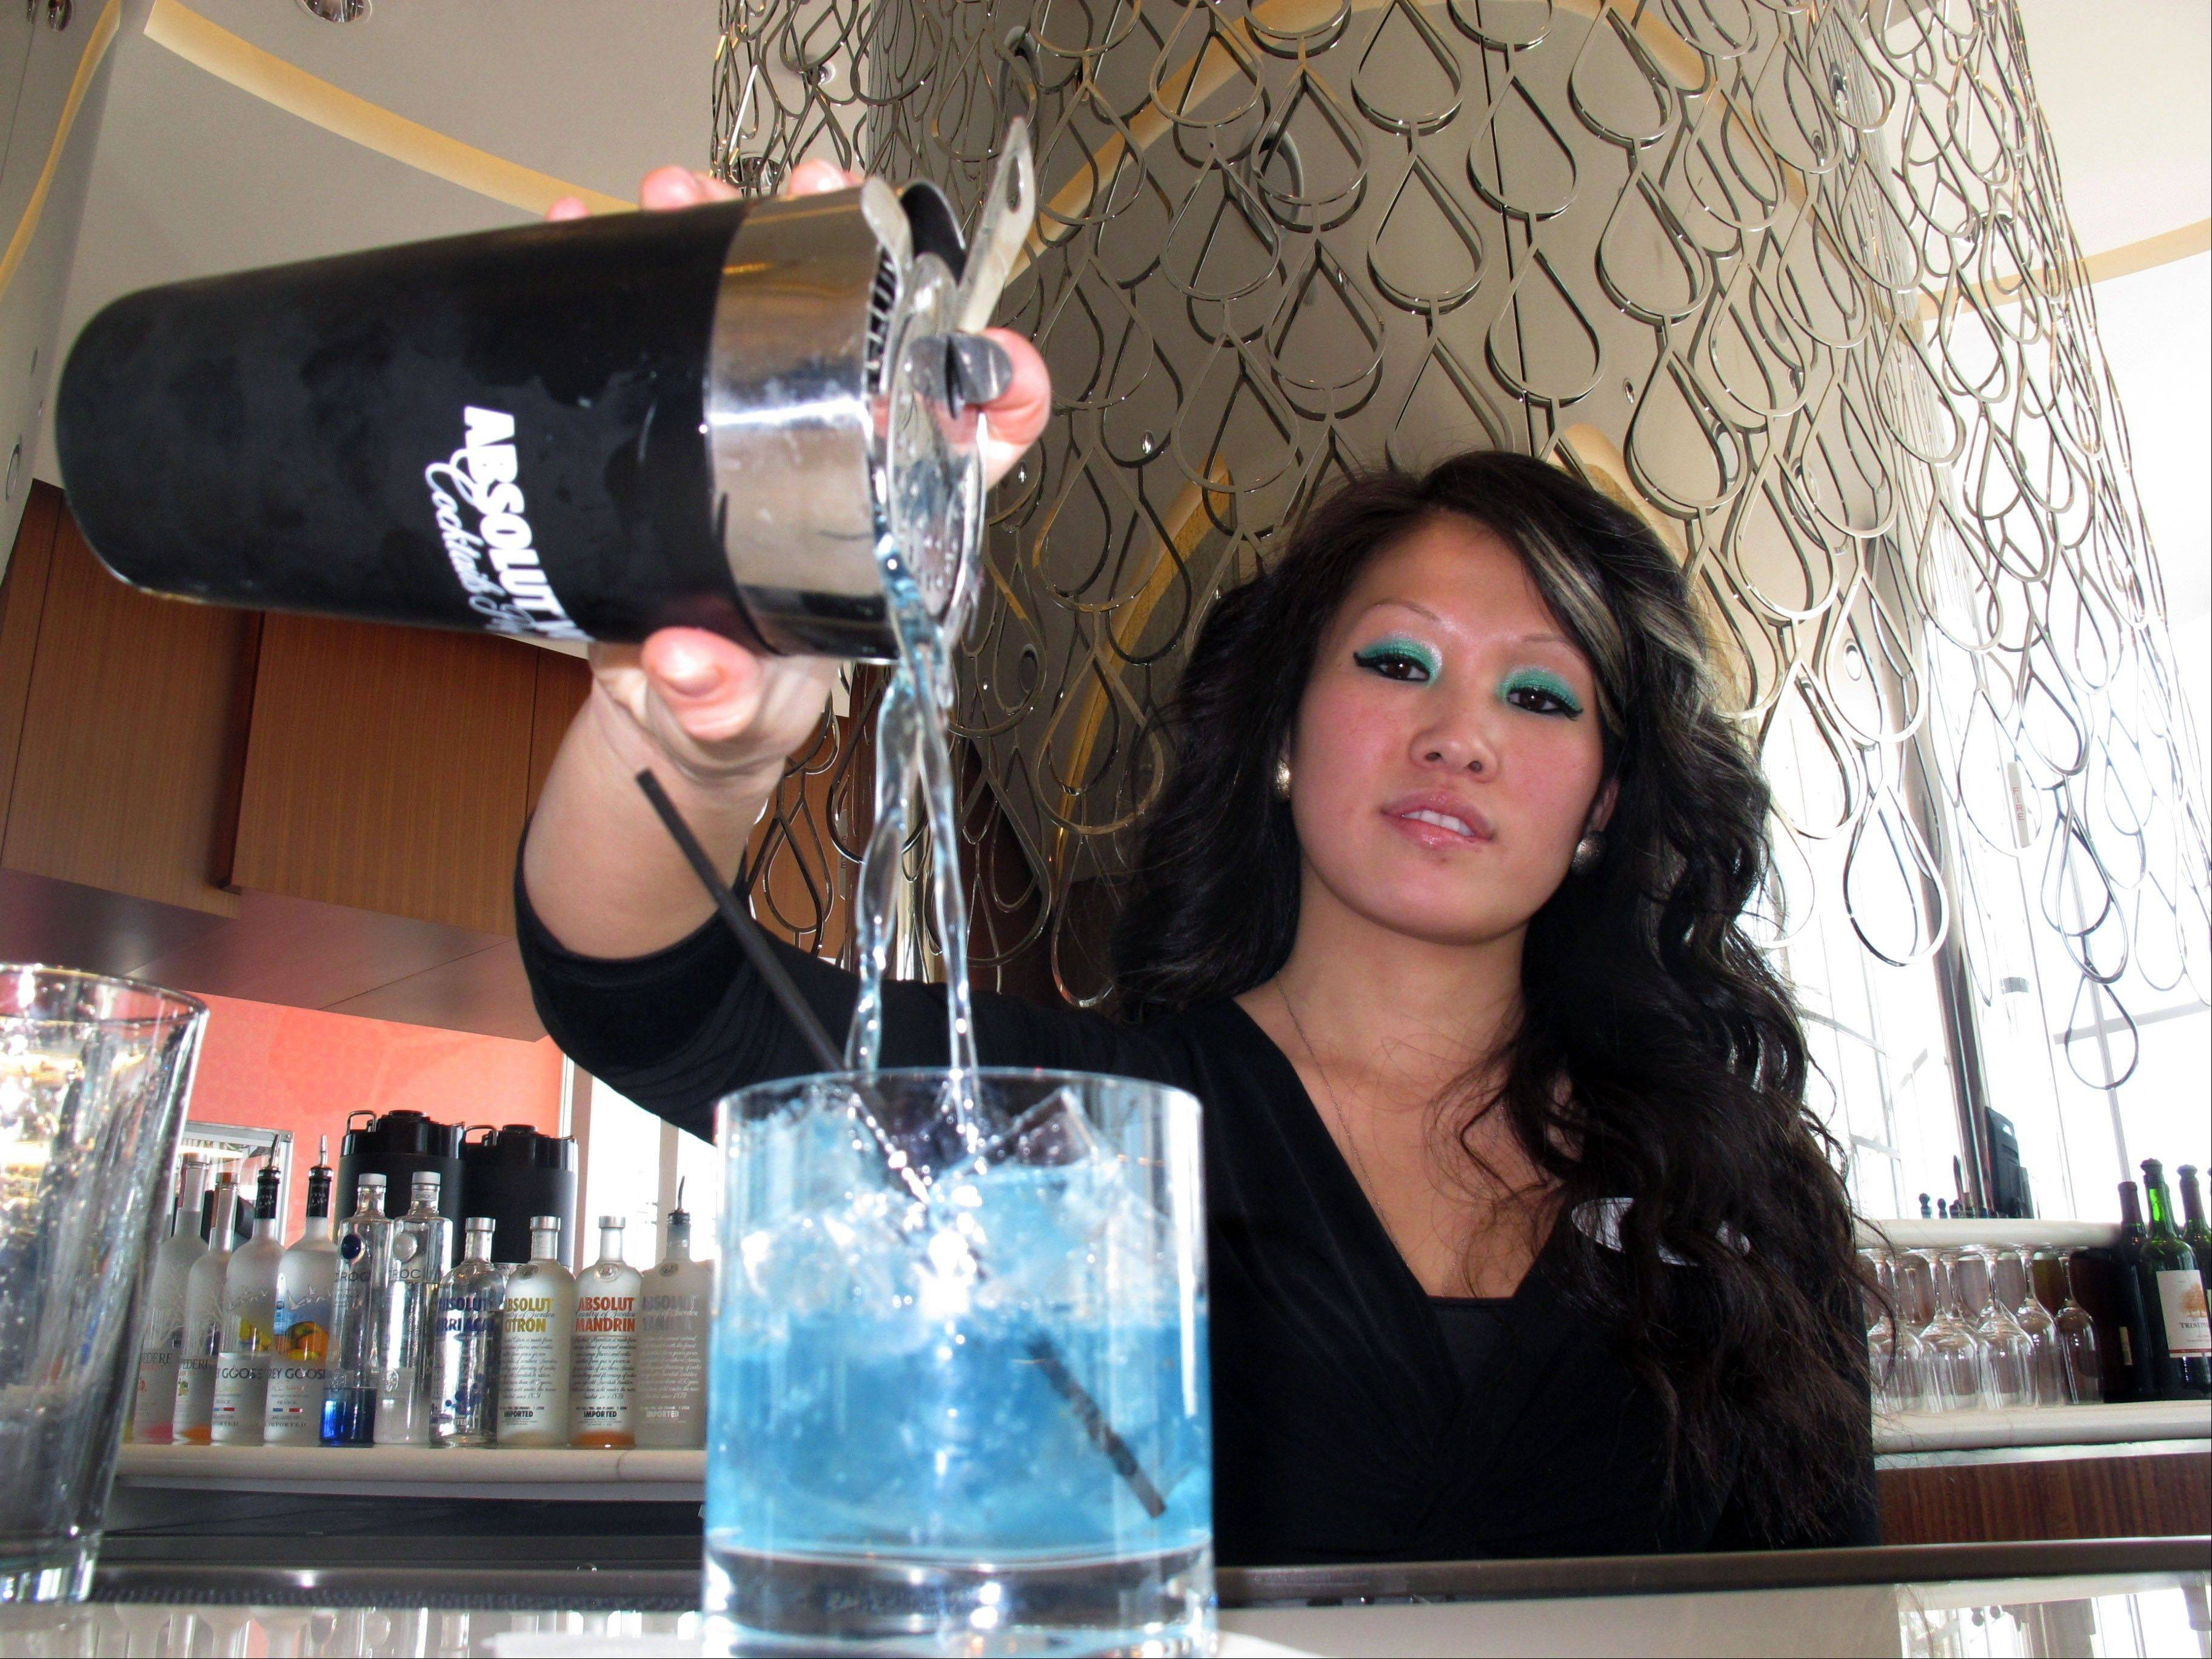 Associated Press/April 8Mary Ma, a bartender at Revel, Atlantic City, N.J.'s newest casino, pours a drink at one of the casino's bars. The Institute for Supply Management said Friday that its index of non-manufacturing activity fell to 53.1 in April from 54.4 in March. Any reading above 50 indicates expansion.